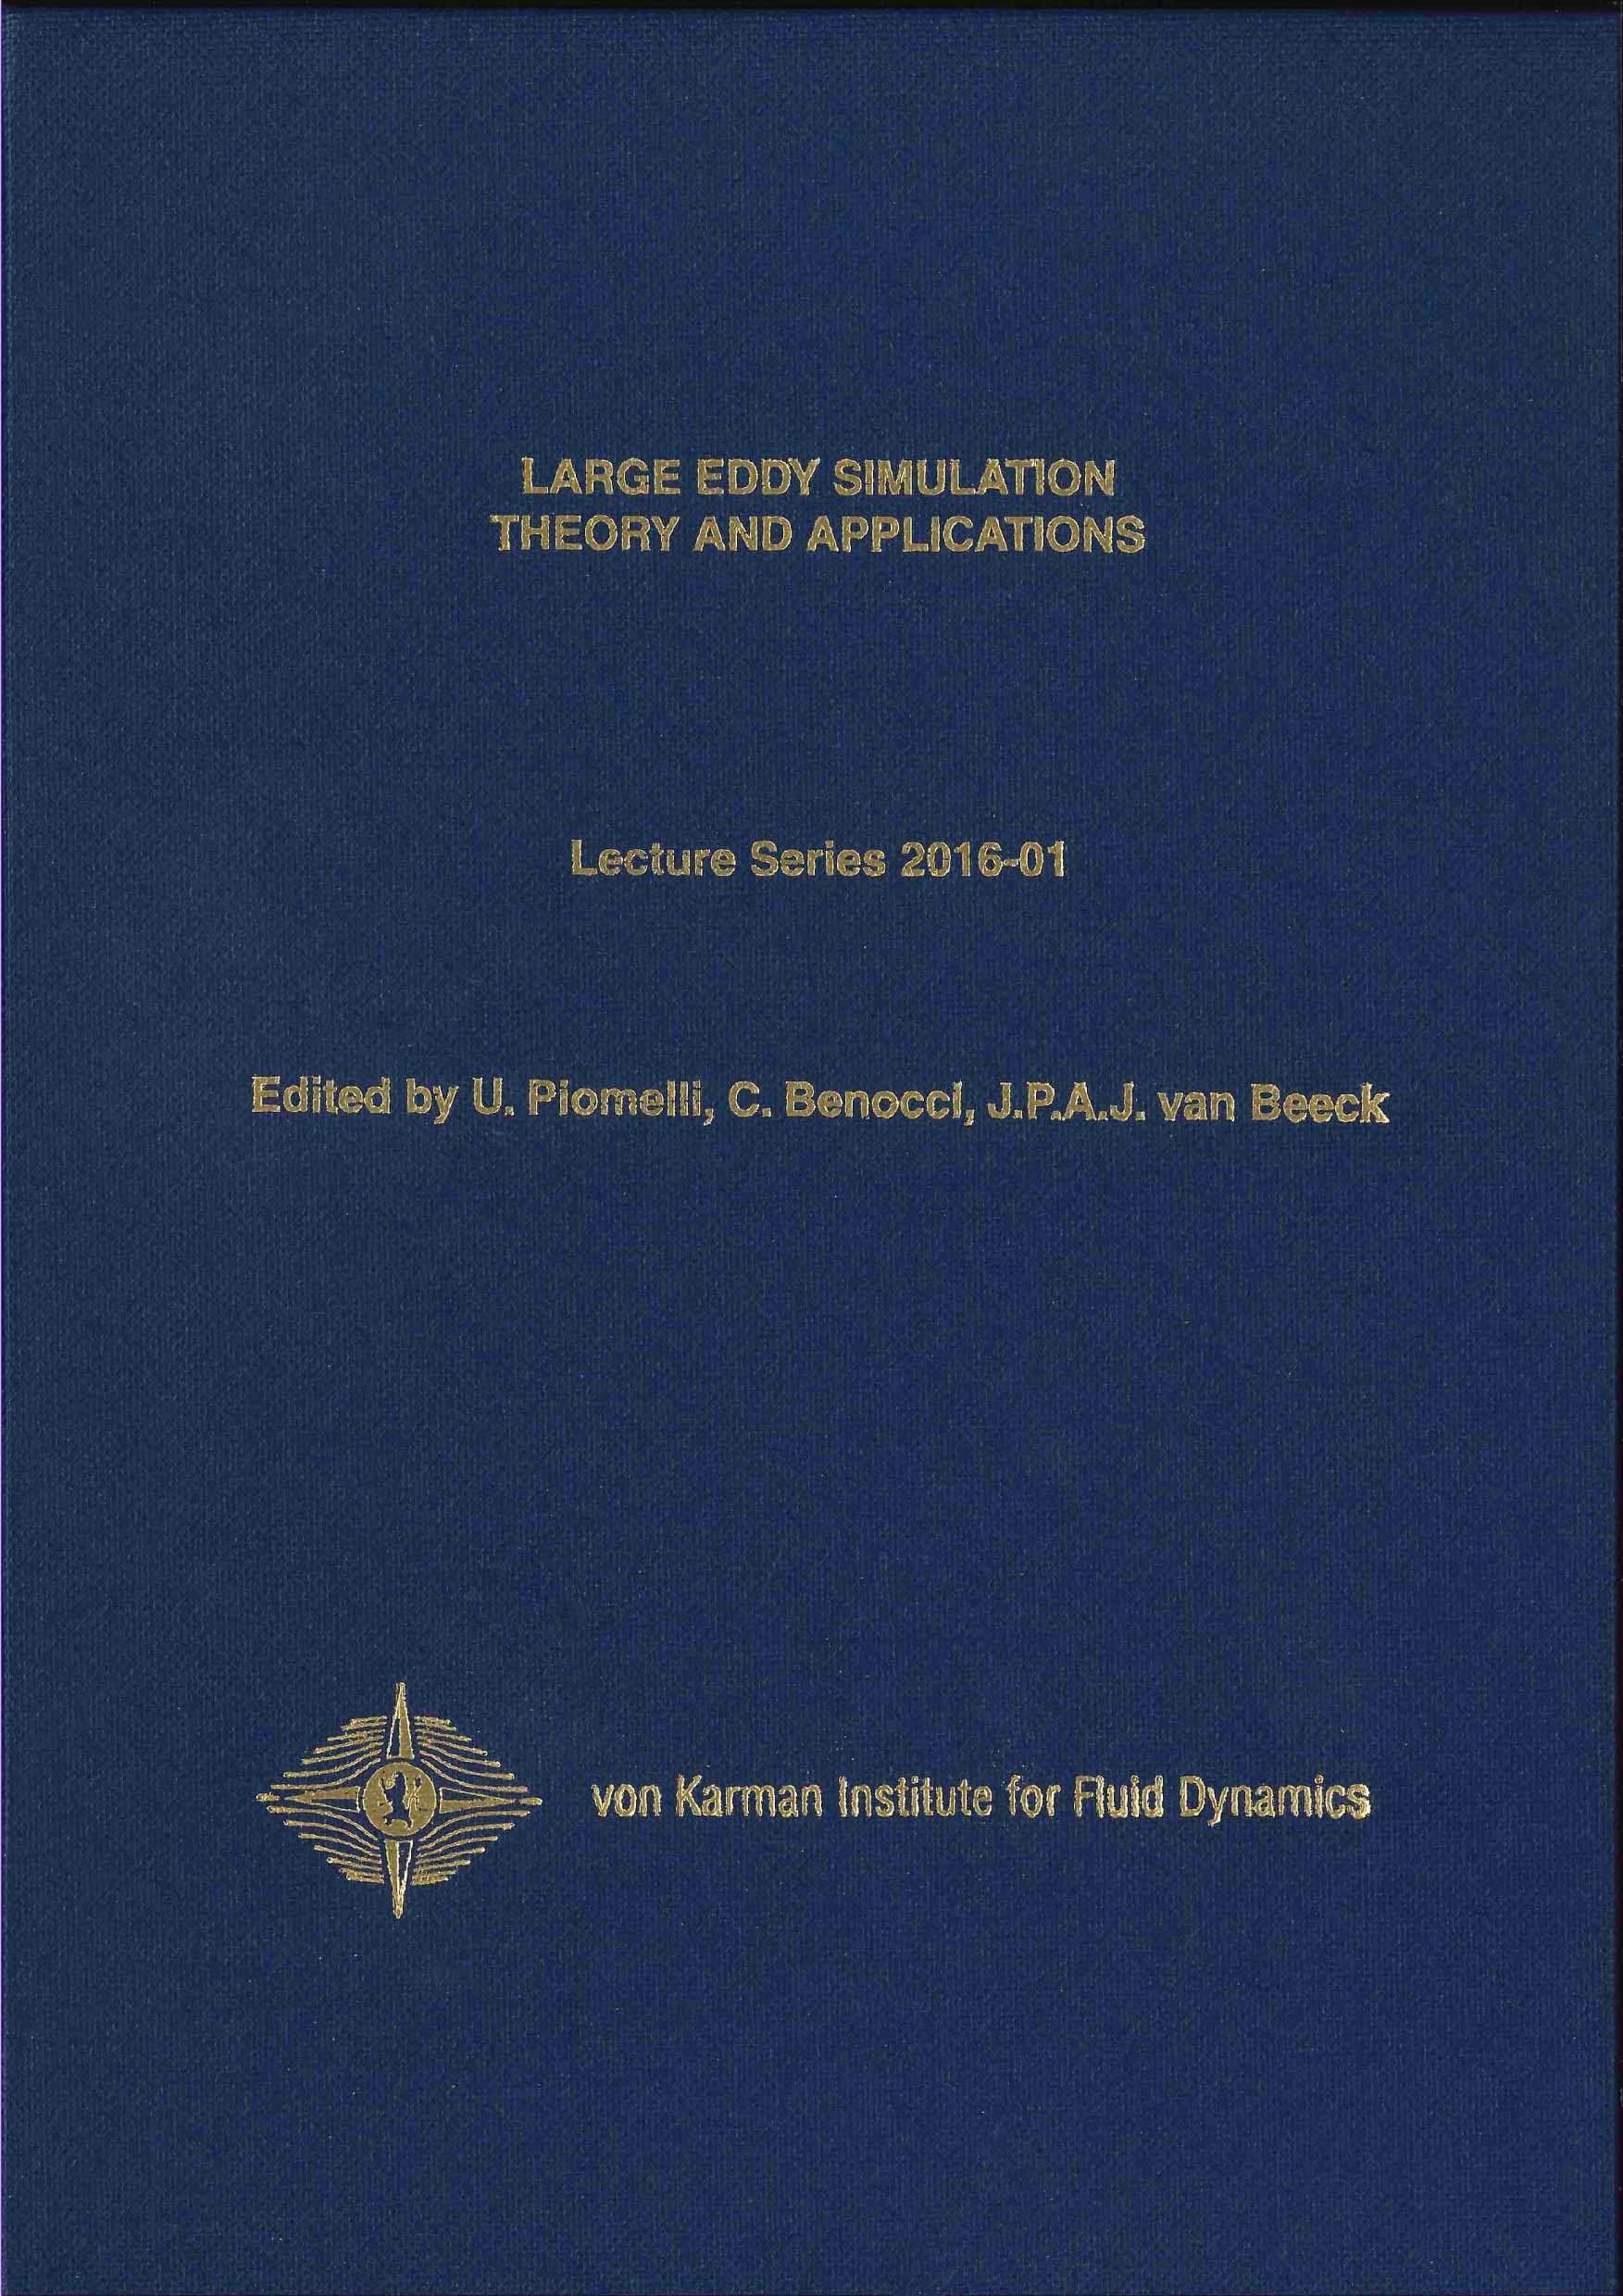 Large eddy simulation. Theory and applications - hardcover - VKI LS 2016-01